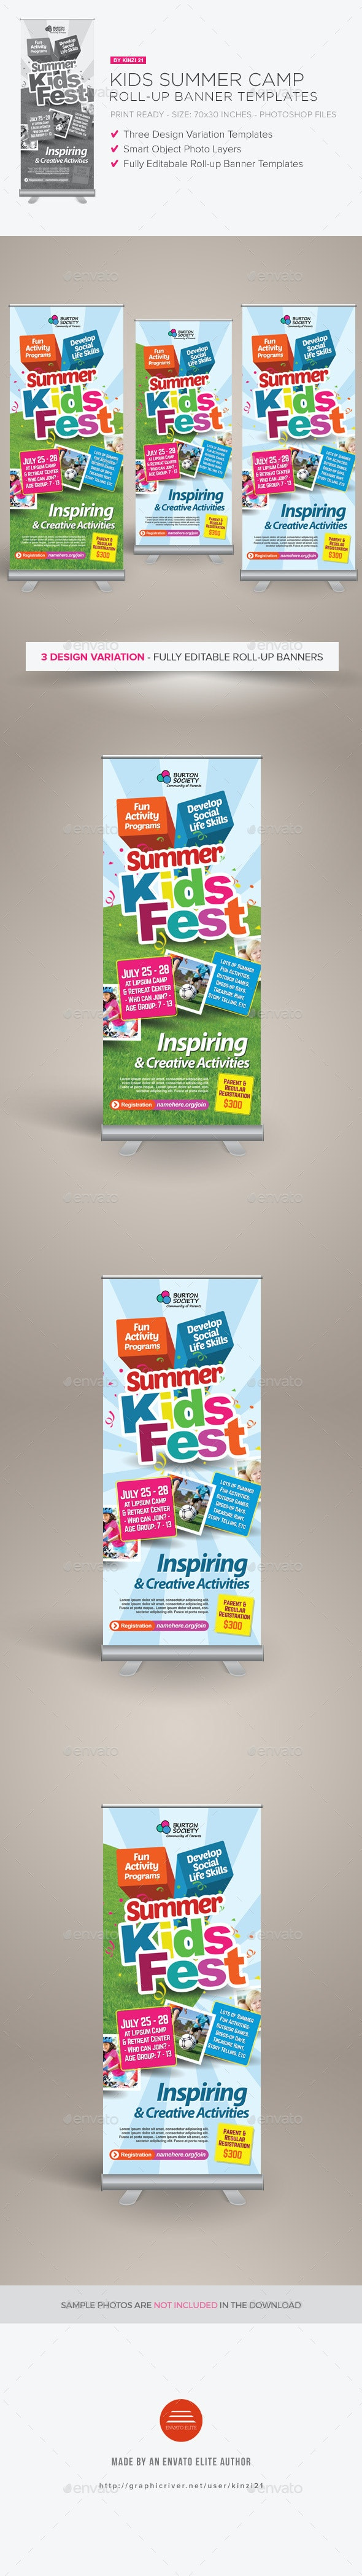 Kids Summer Camp Roll-up Banners - Signage Print Templates